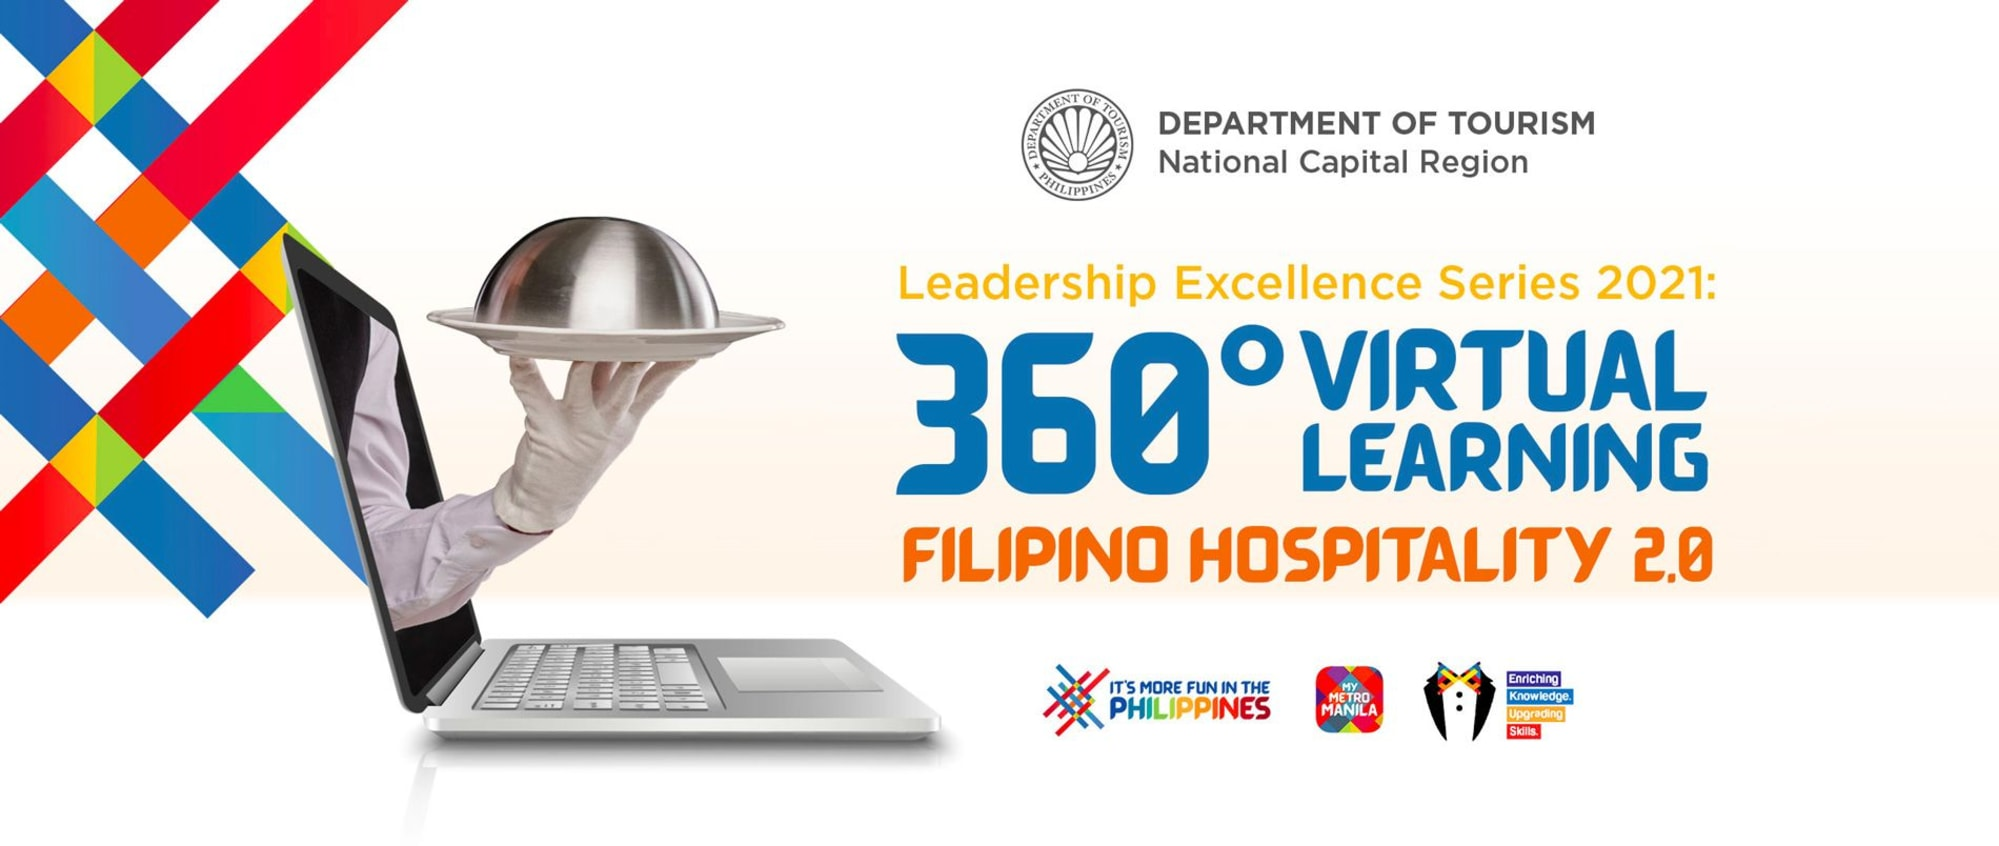 DOT launched their fourth online hybrid training program aims to raise the bar on Filipino Hospitality and Culinary